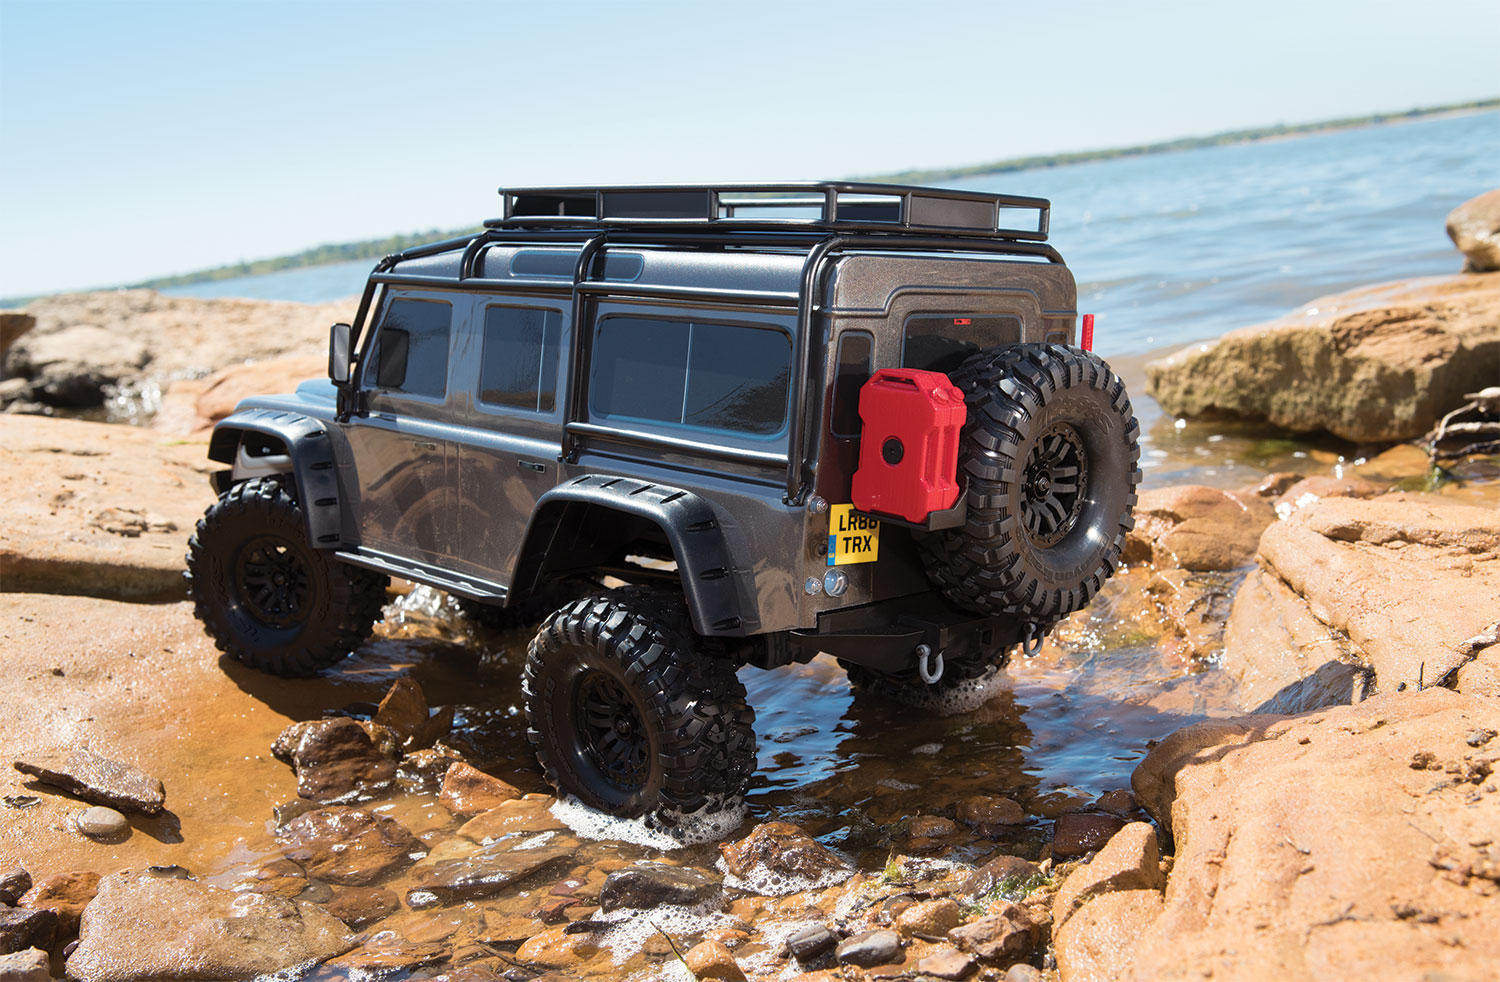 Traxxas TRX-4 Land Rover Defender 110 (Grey)